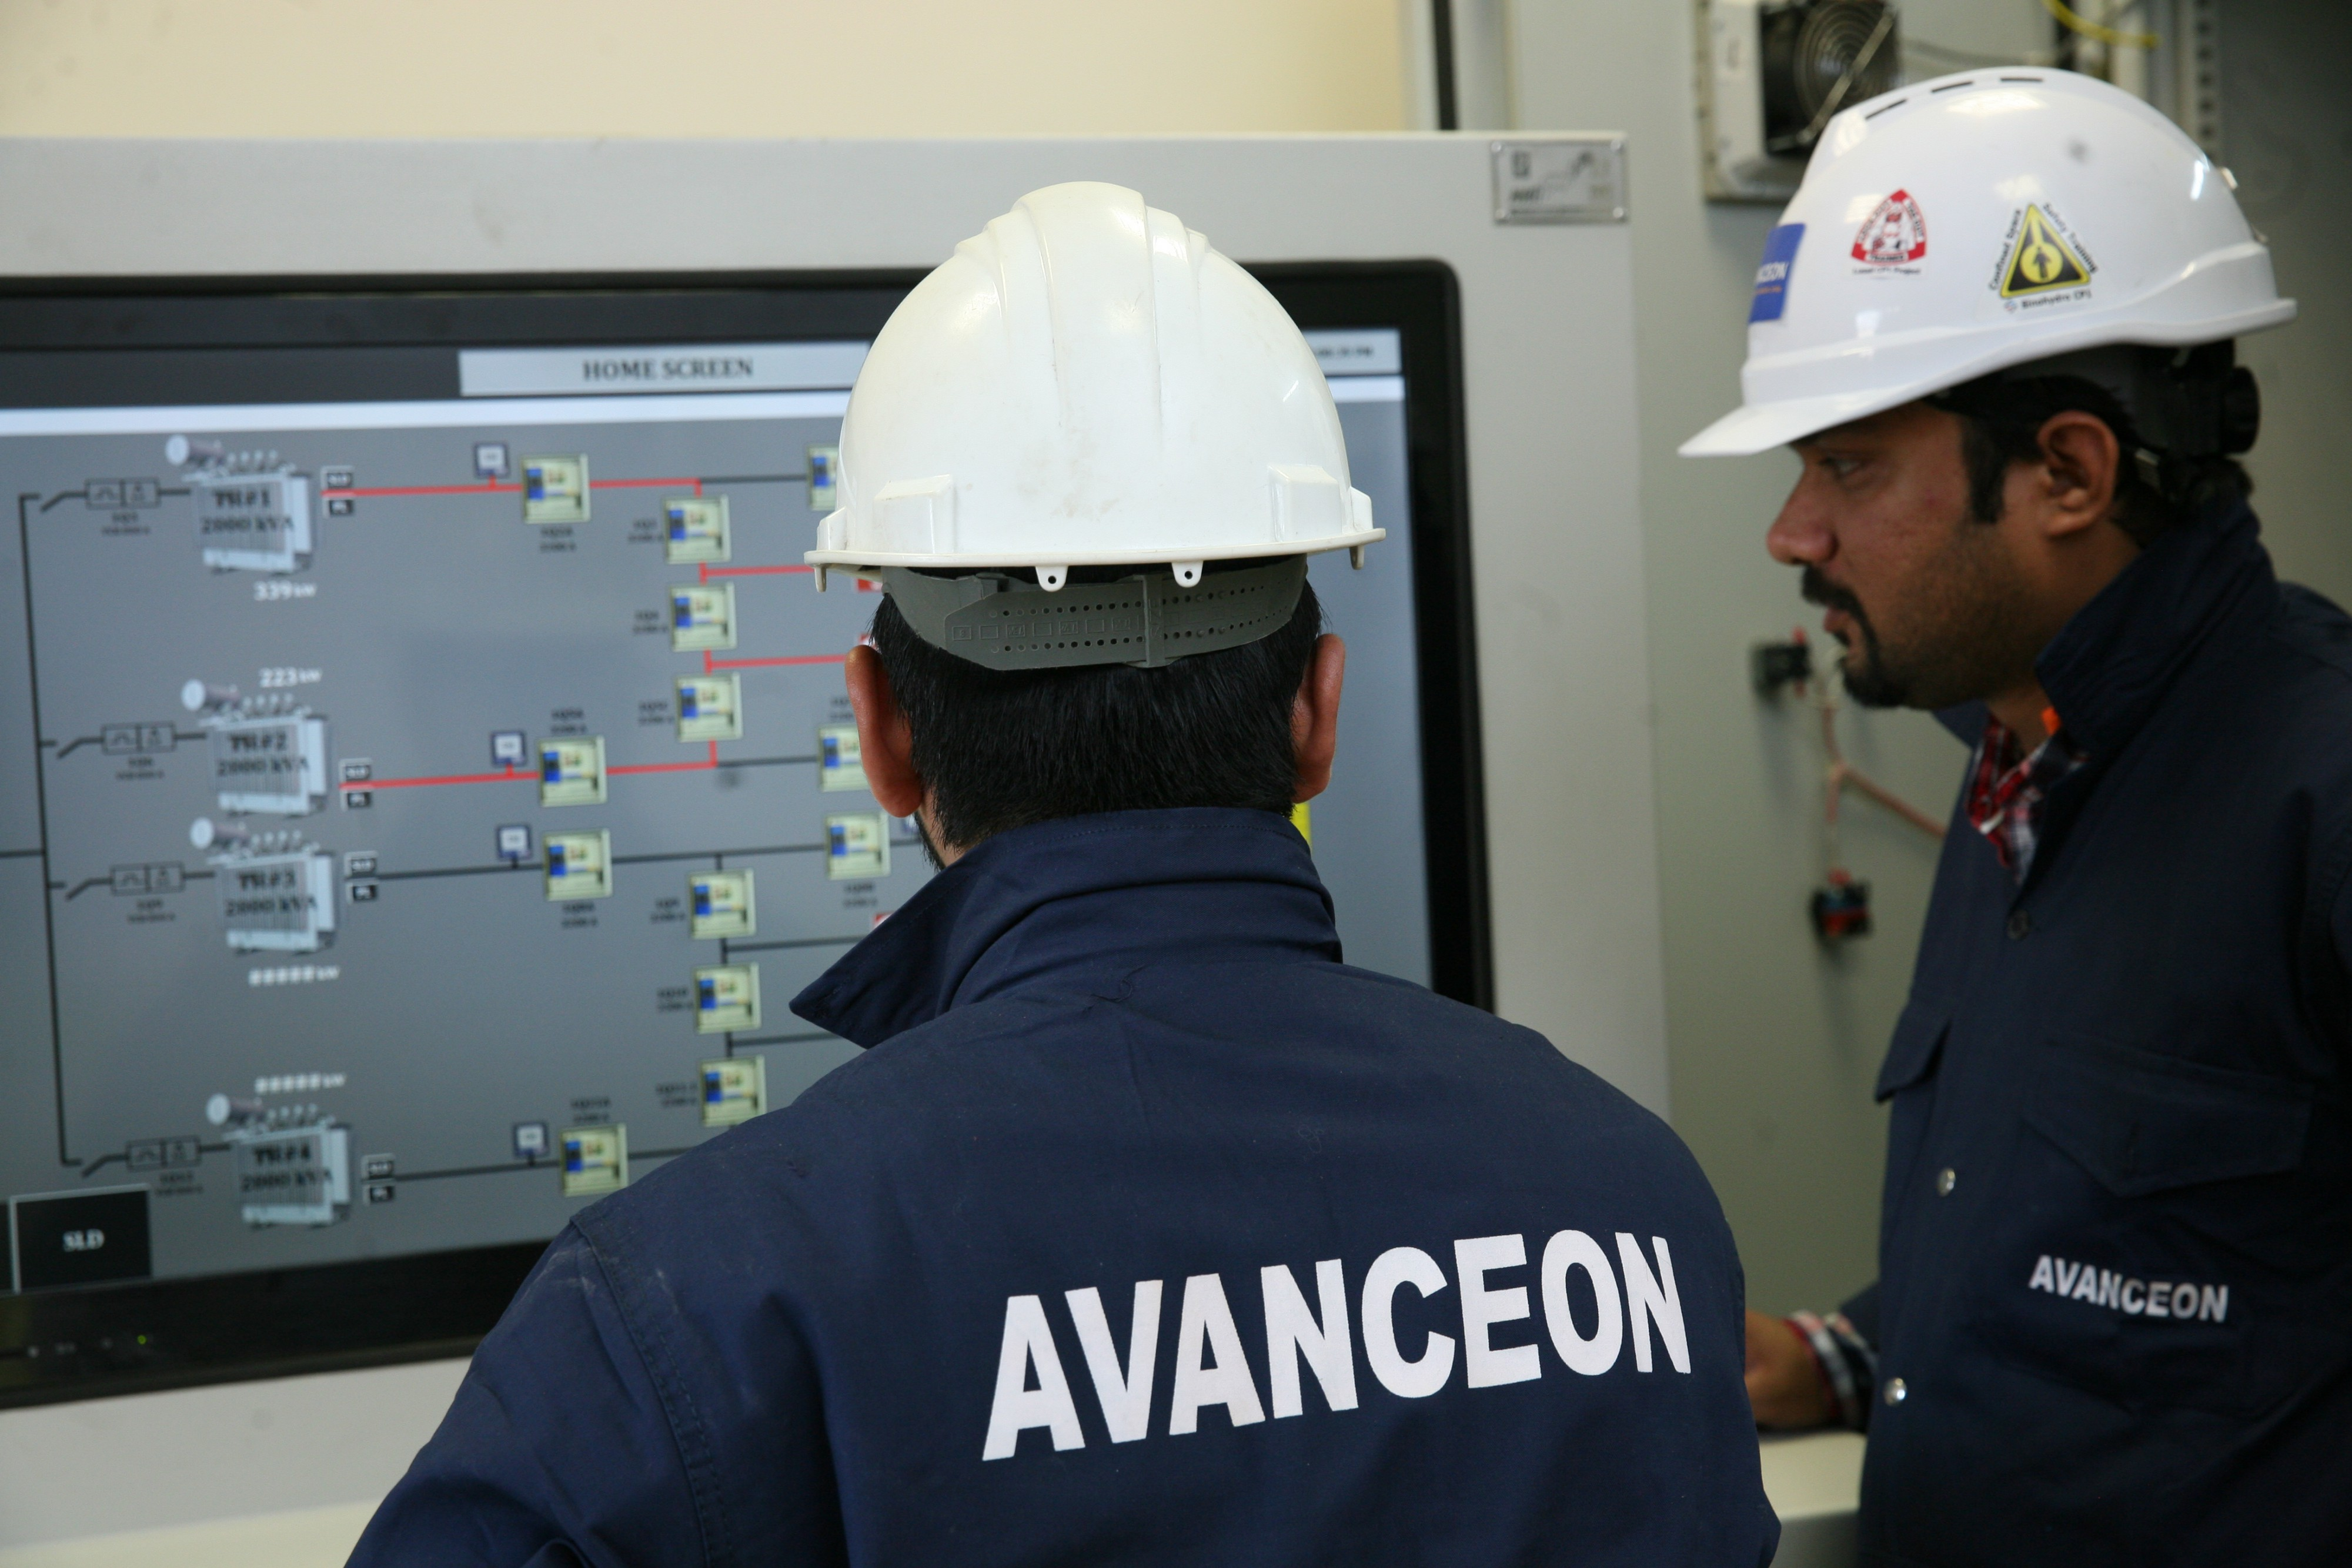 Avanceon to provide SCADA system for wellheads and flow metering station at Mari Gas Field - Pakistan's largest gas reservoir